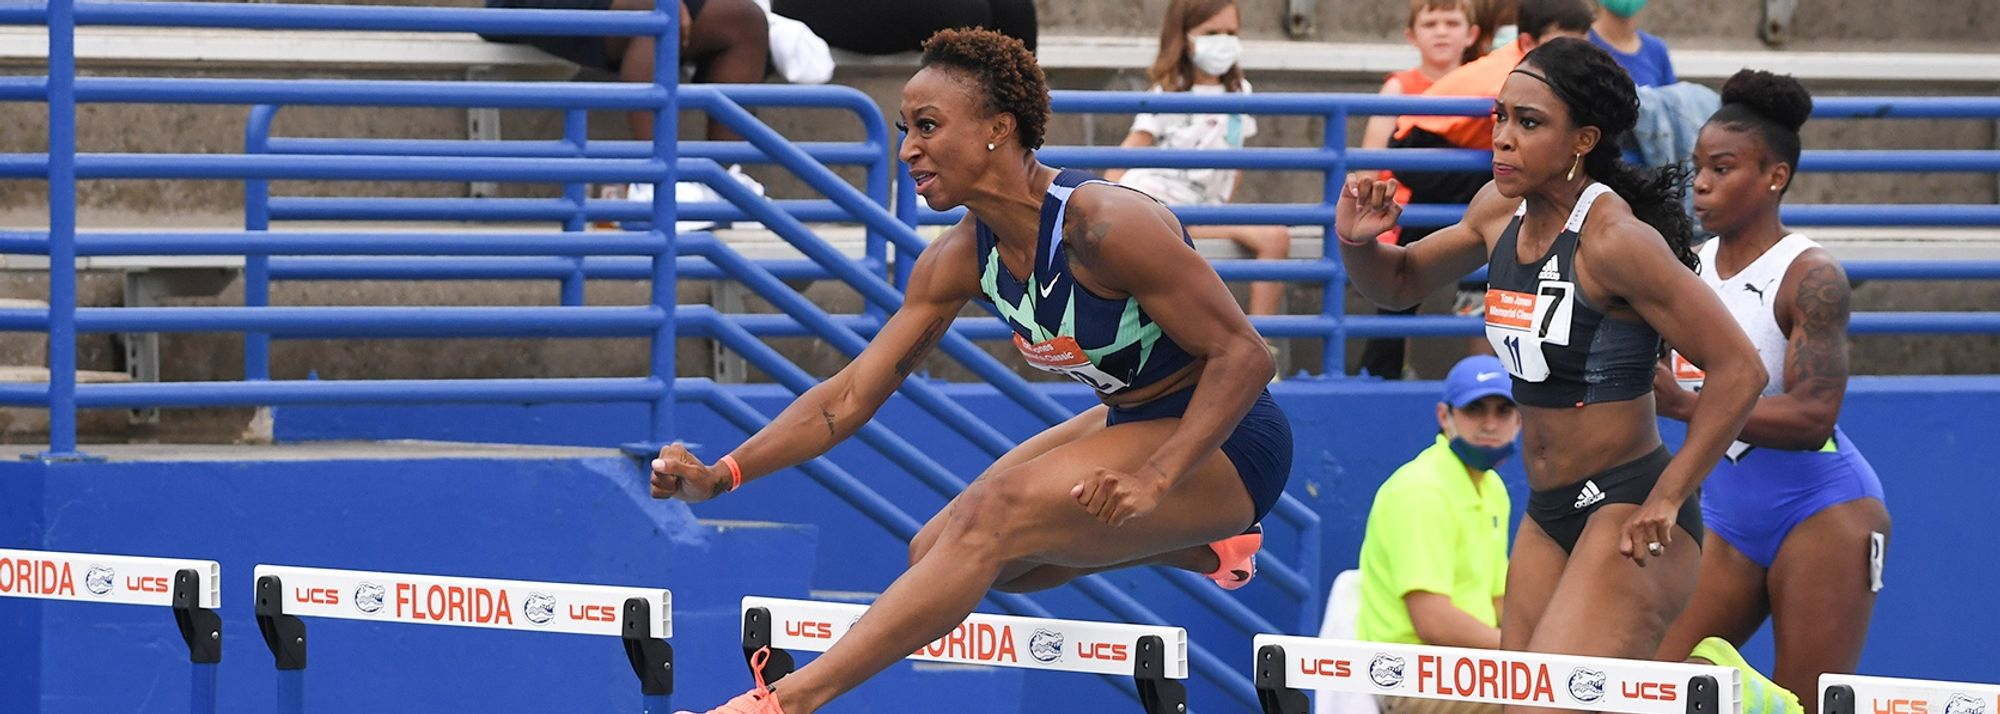 Puerto Rican hurdler now moves to equal seventh on world all-time list